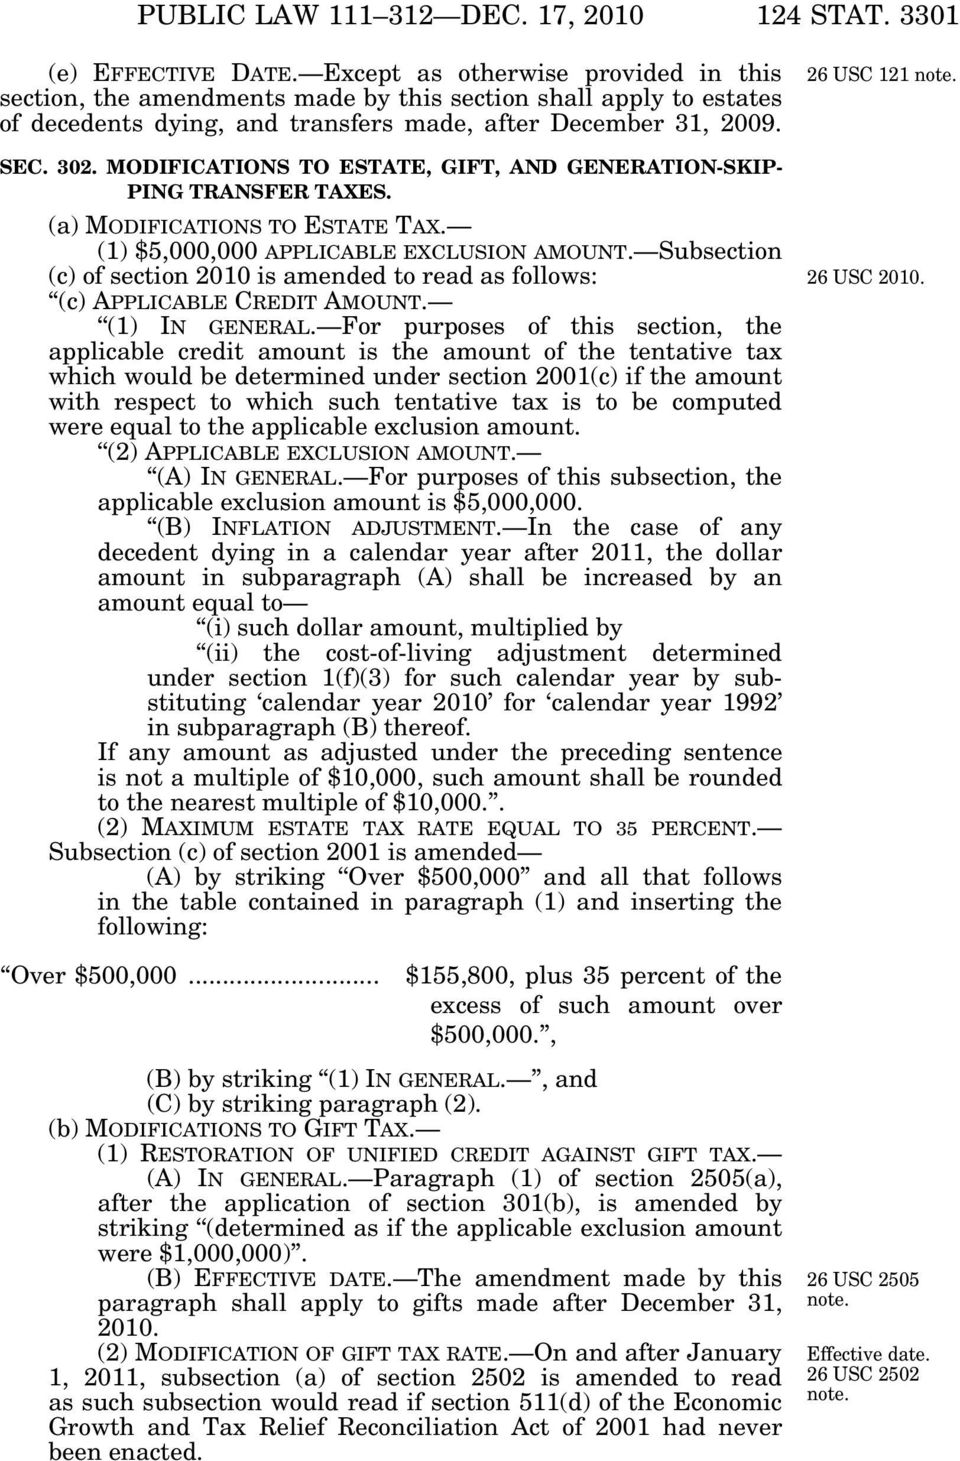 MODIFICATIONS TO ESTATE, GIFT, AND GENERATION-SKIP- PING TRANSFER TAXES. (a) MODIFICATIONS TO ESTATE TAX. (1) $5,000,000 APPLICABLE EXCLUSION AMOUNT.